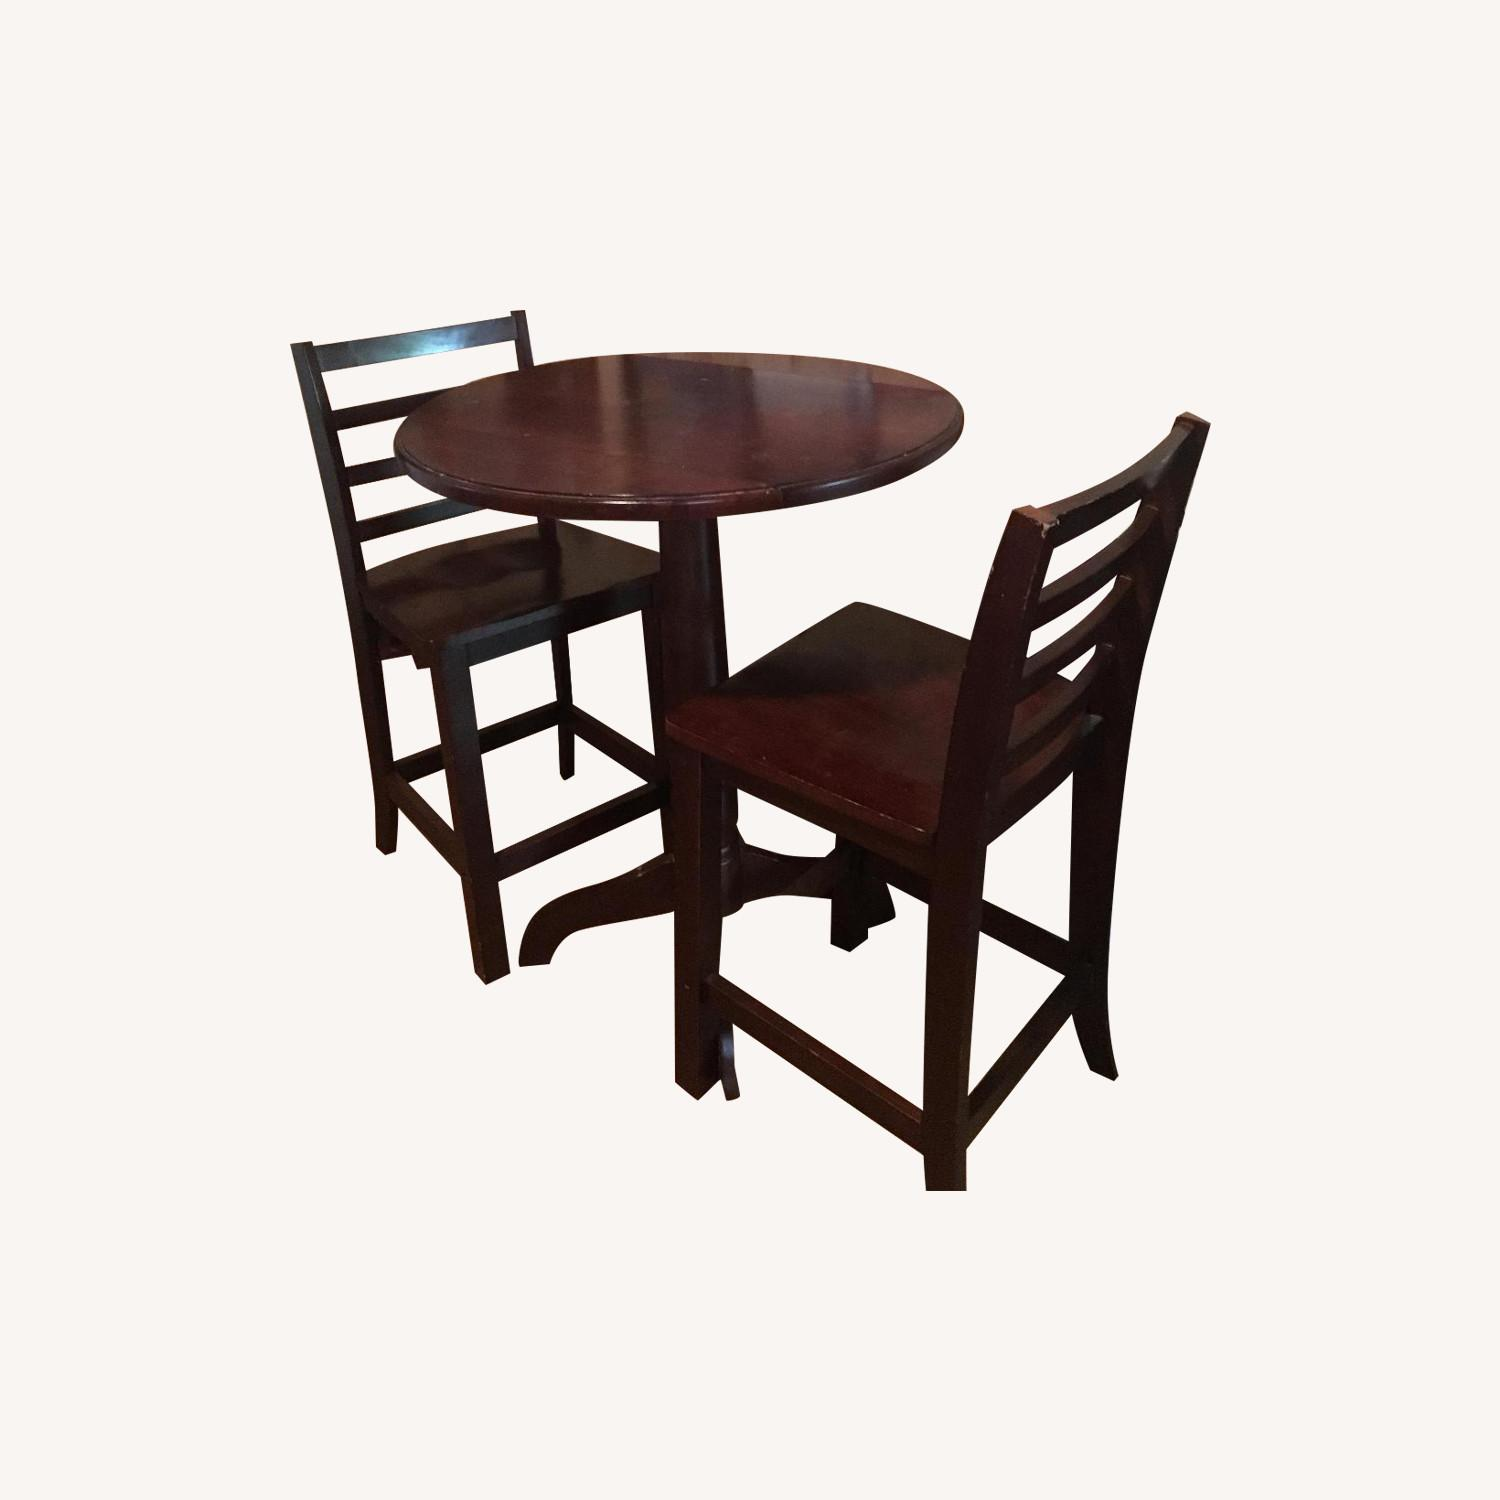 Wood Pub Table w/ 2 Chairs - image-0